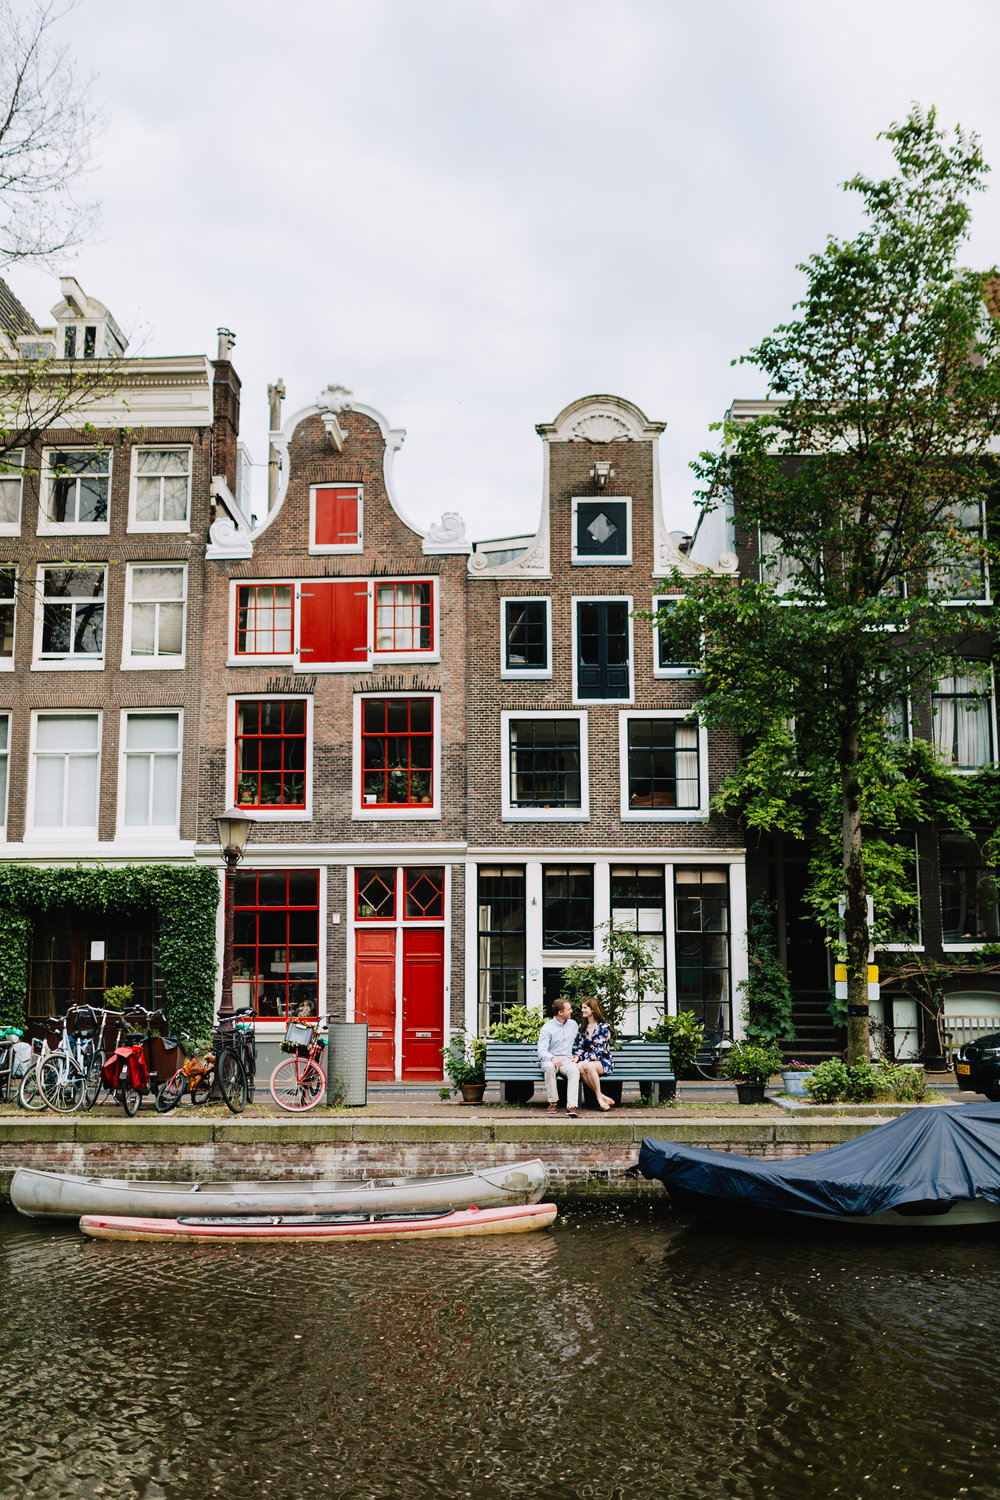 Get inspired for your vacation to the Netherlands by checking out Flytographer's roundup of the 30 best photos of the Amsterdam Canals | Hire a Vacation Photographer with Flytographer